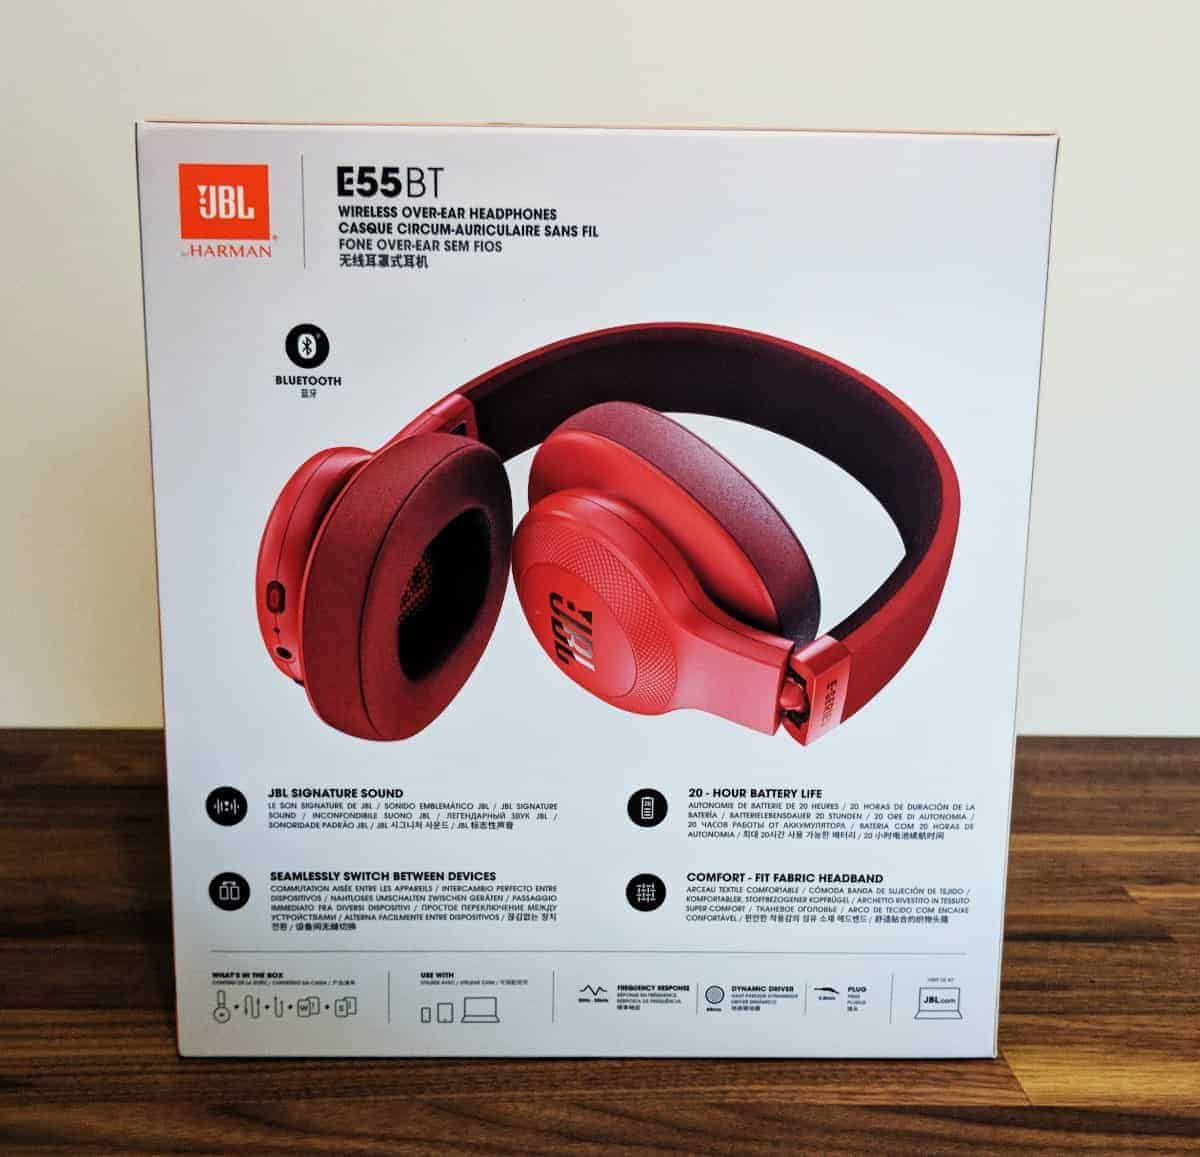 JBL-E55BTi-Photos-12 JBL E55BT Wireless Headphones Review